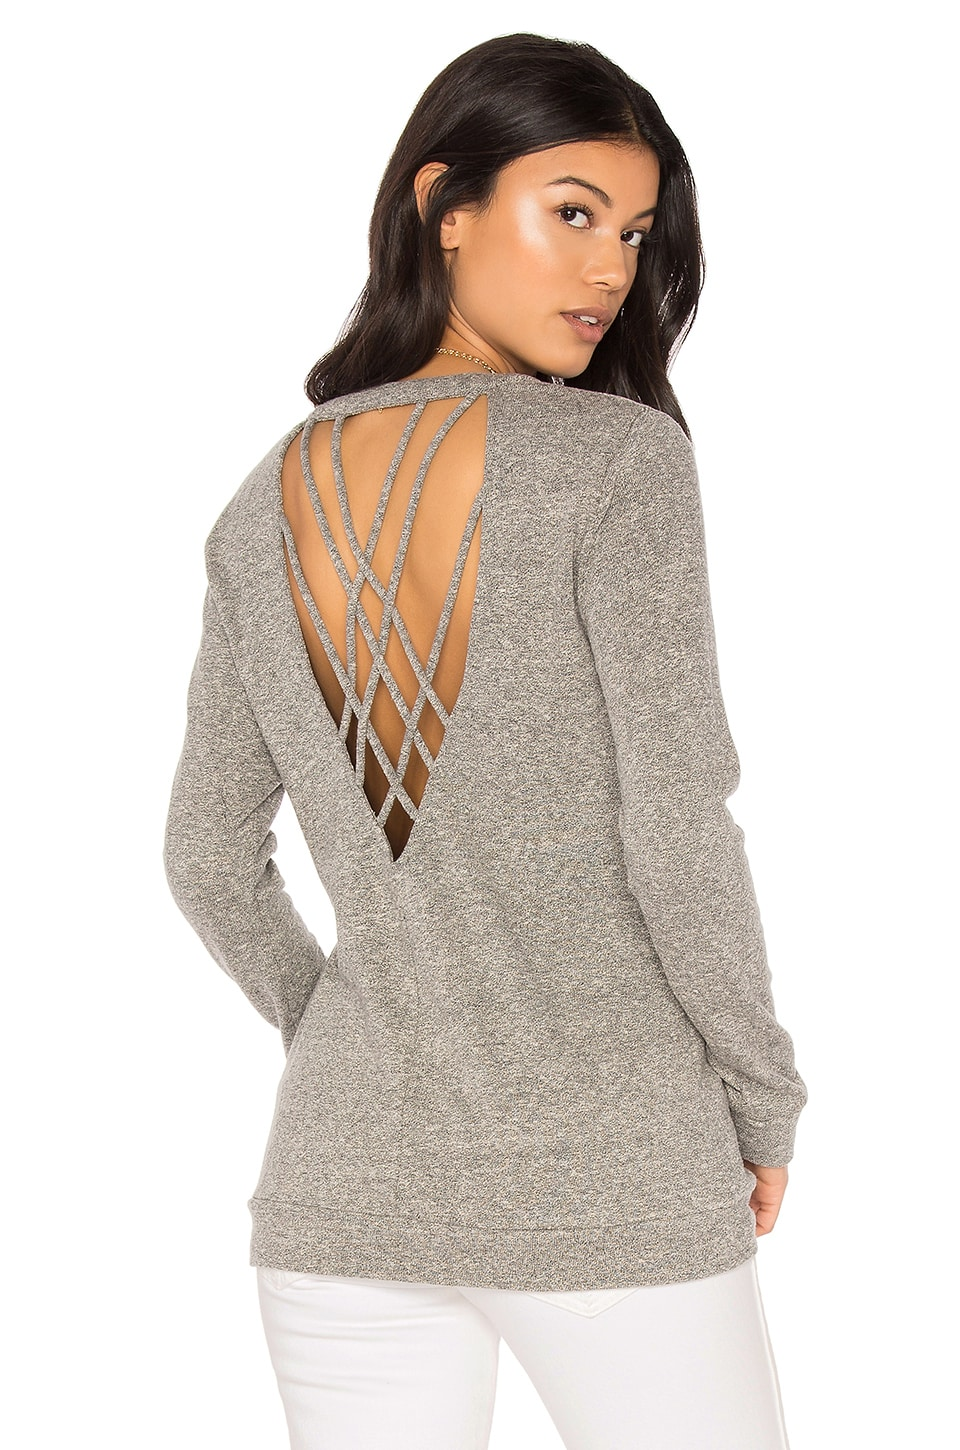 Lanston Strappy Back Pullover in Heather